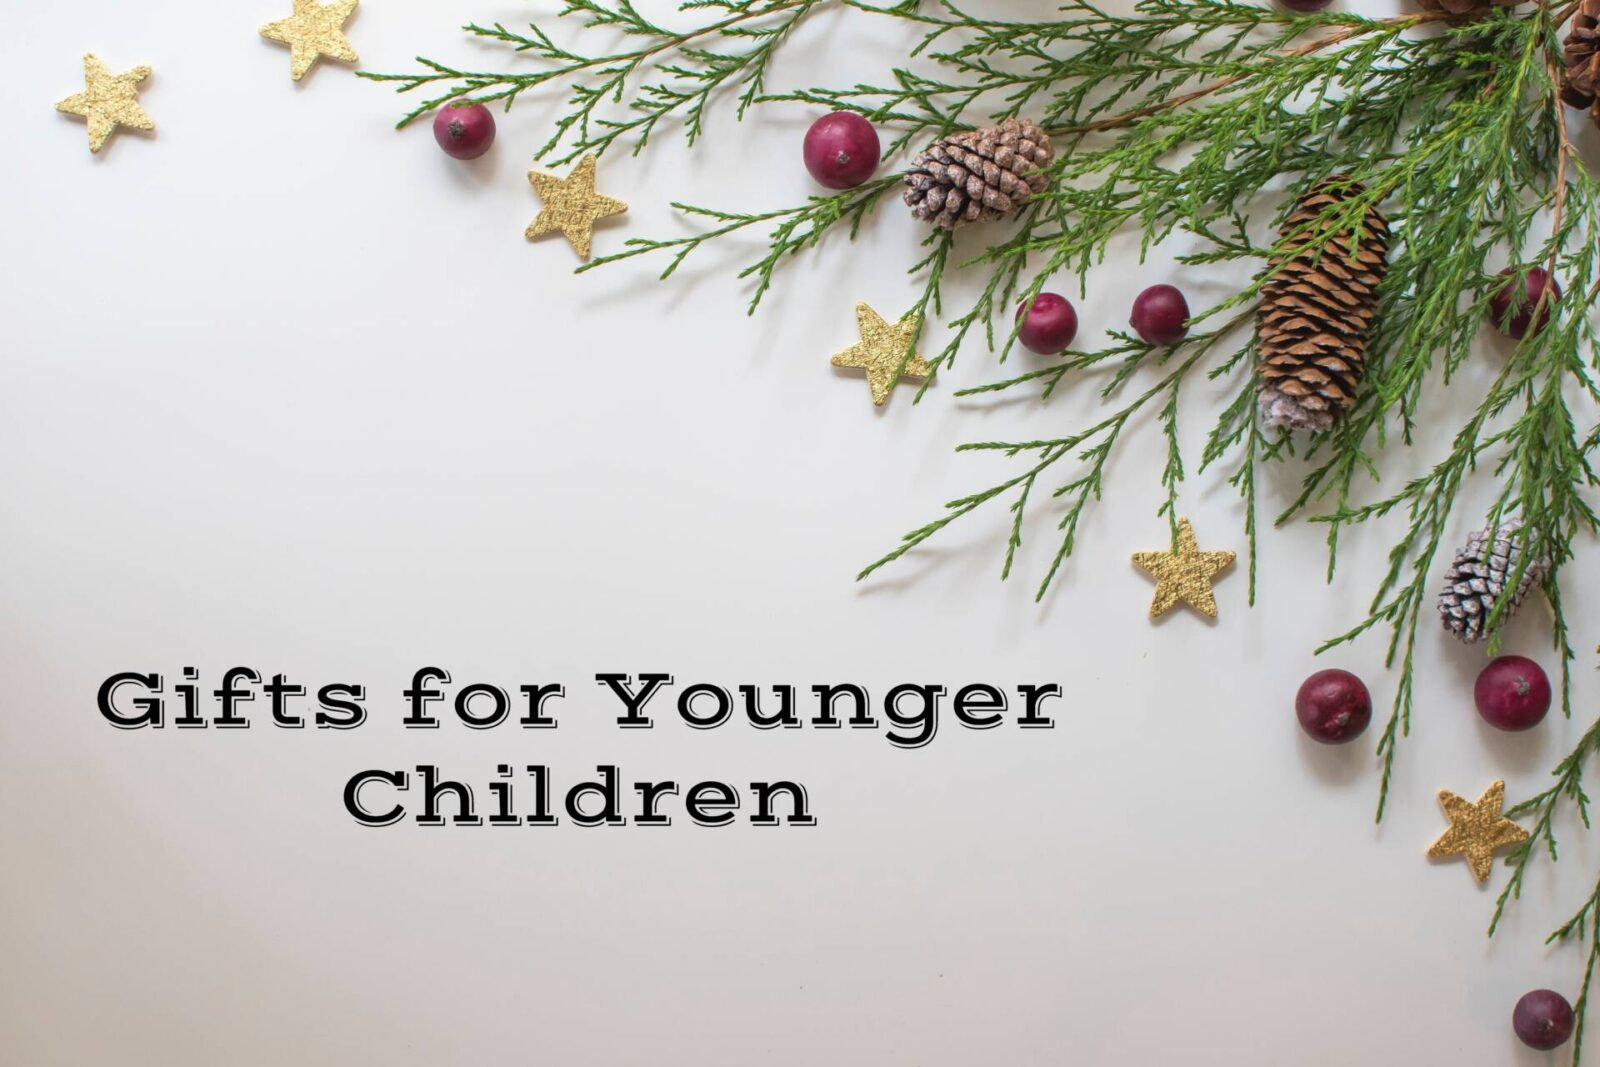 Gift Ideas for Younger Children